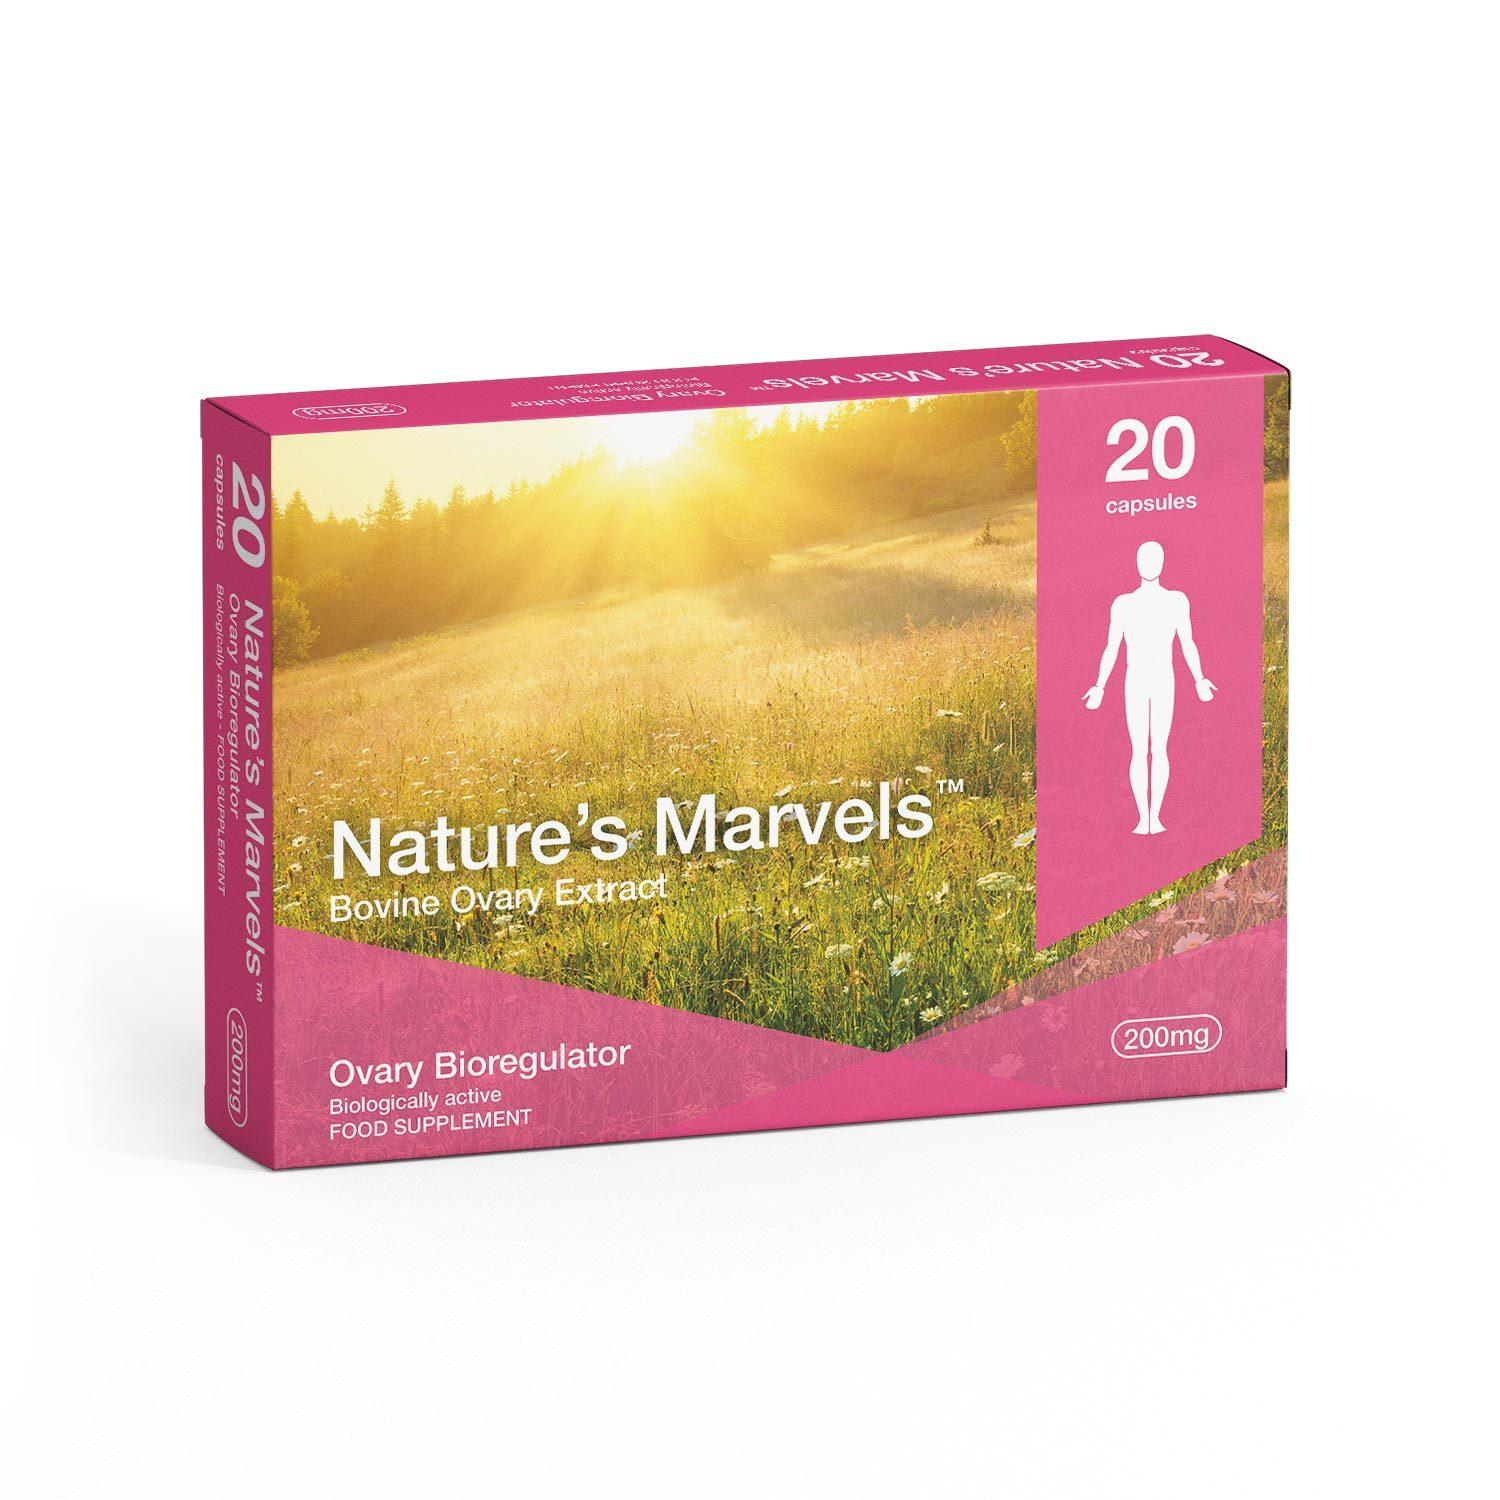 Nature's Marvels – Ovary Bioregulator with Zhenoluten 20 Caps